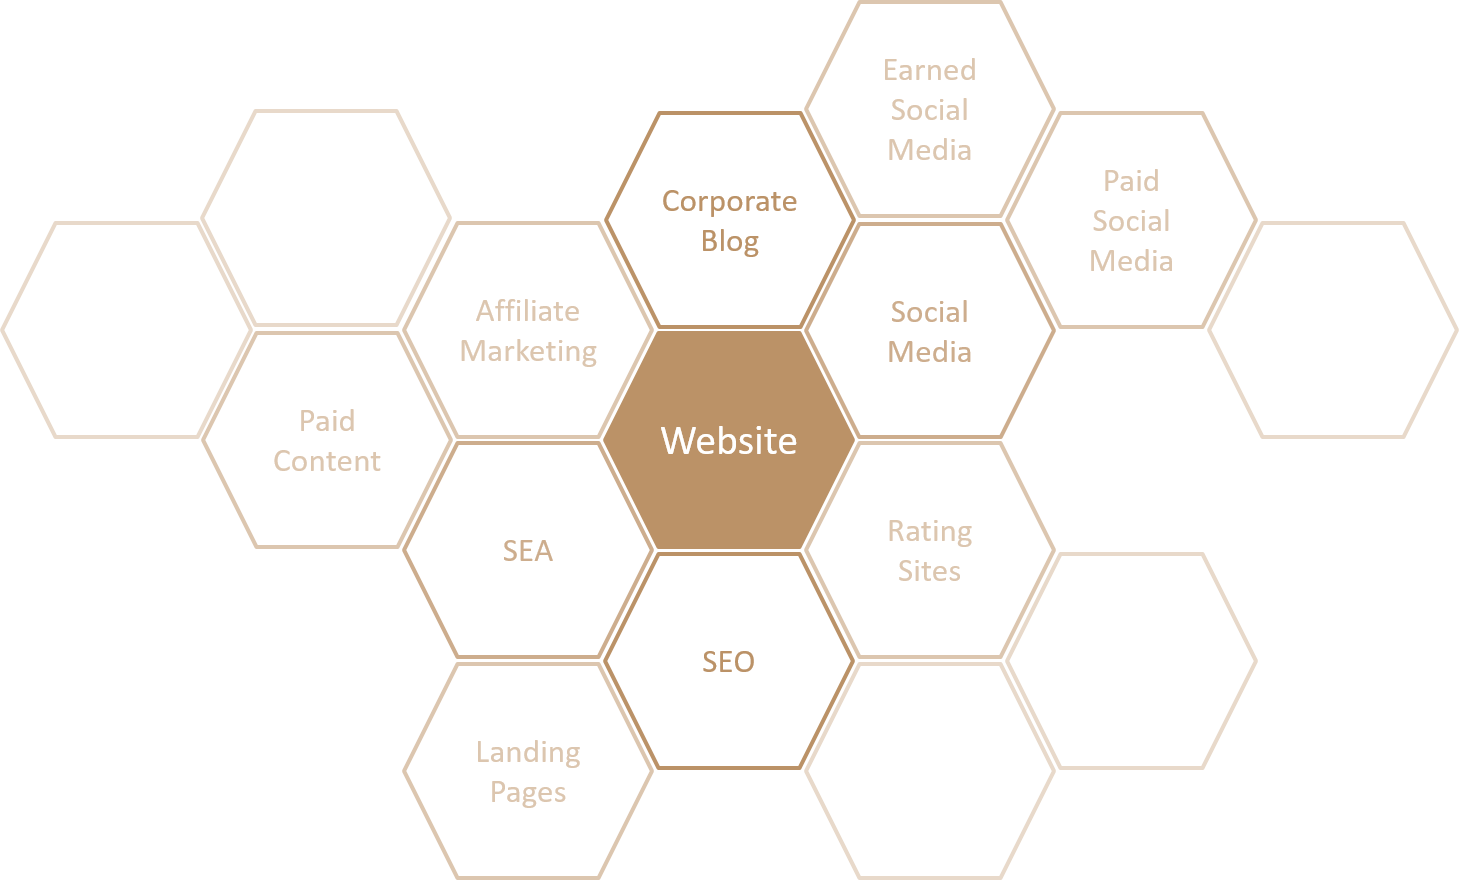 Online Marketing Matrix: Online PR activities are related and linked to many other digital marketing techniques, especially SEO, affiliate marketing, viral marketing and referral marketing.